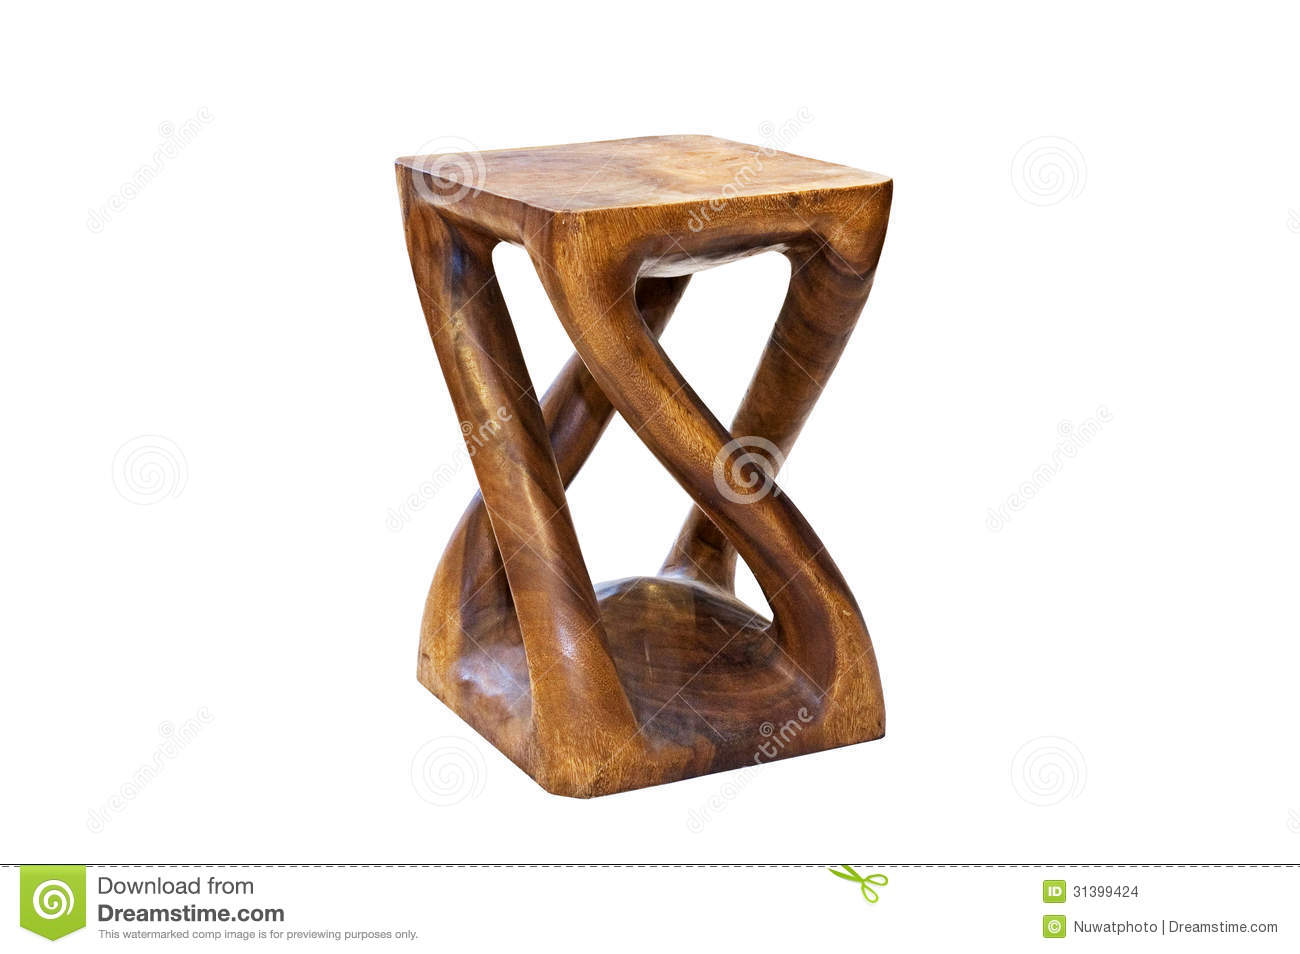 Marvelous photograph of Hand made Wooden Chair Isolated Stock Images Image: 31399424 with #85A724 color and 1300x954 pixels